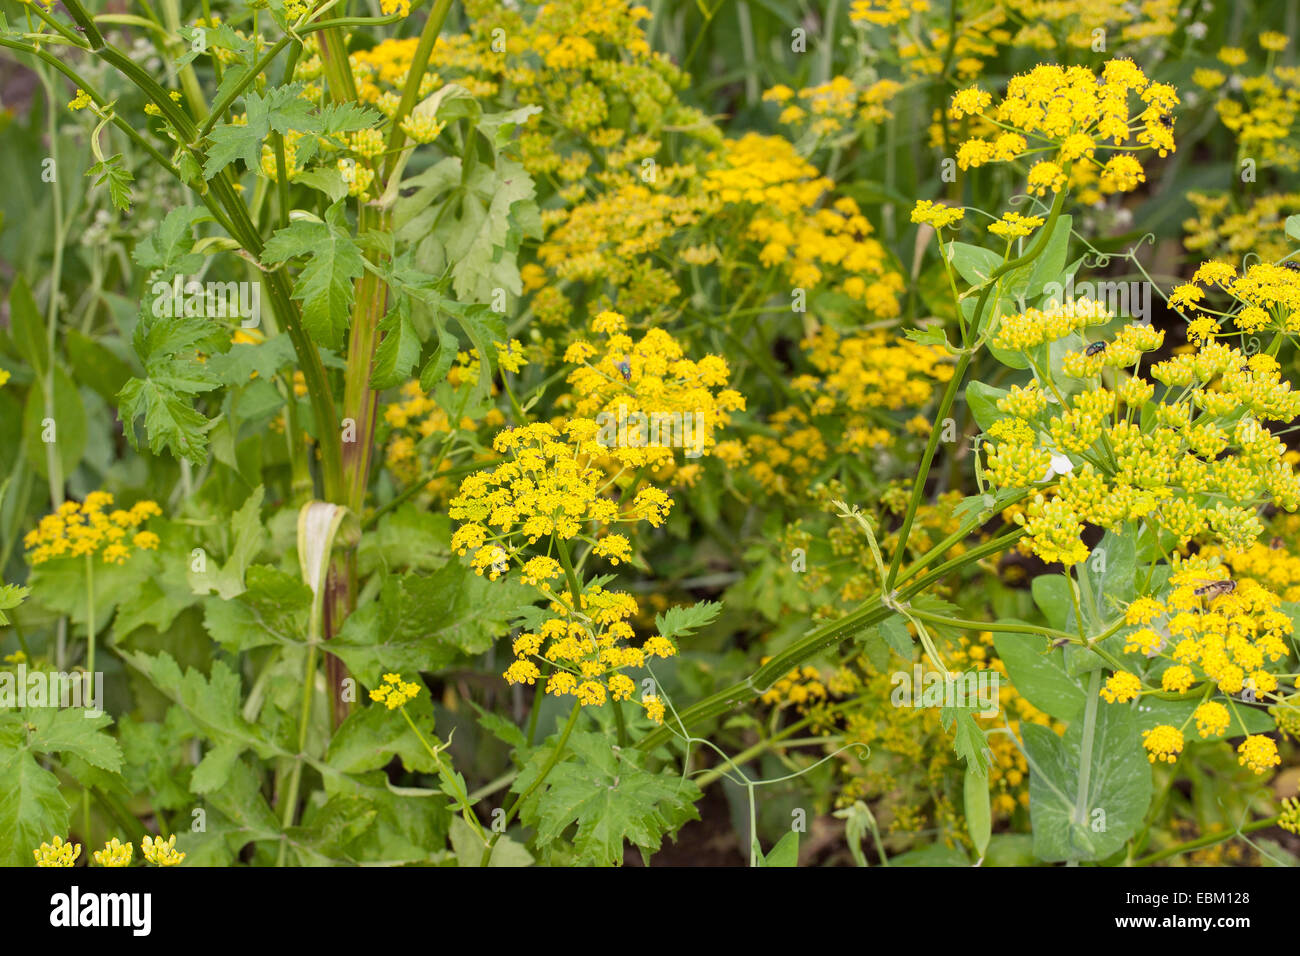 Panais sauvage (Pastinaca sativa) à fleurs jaunes Photo Stock